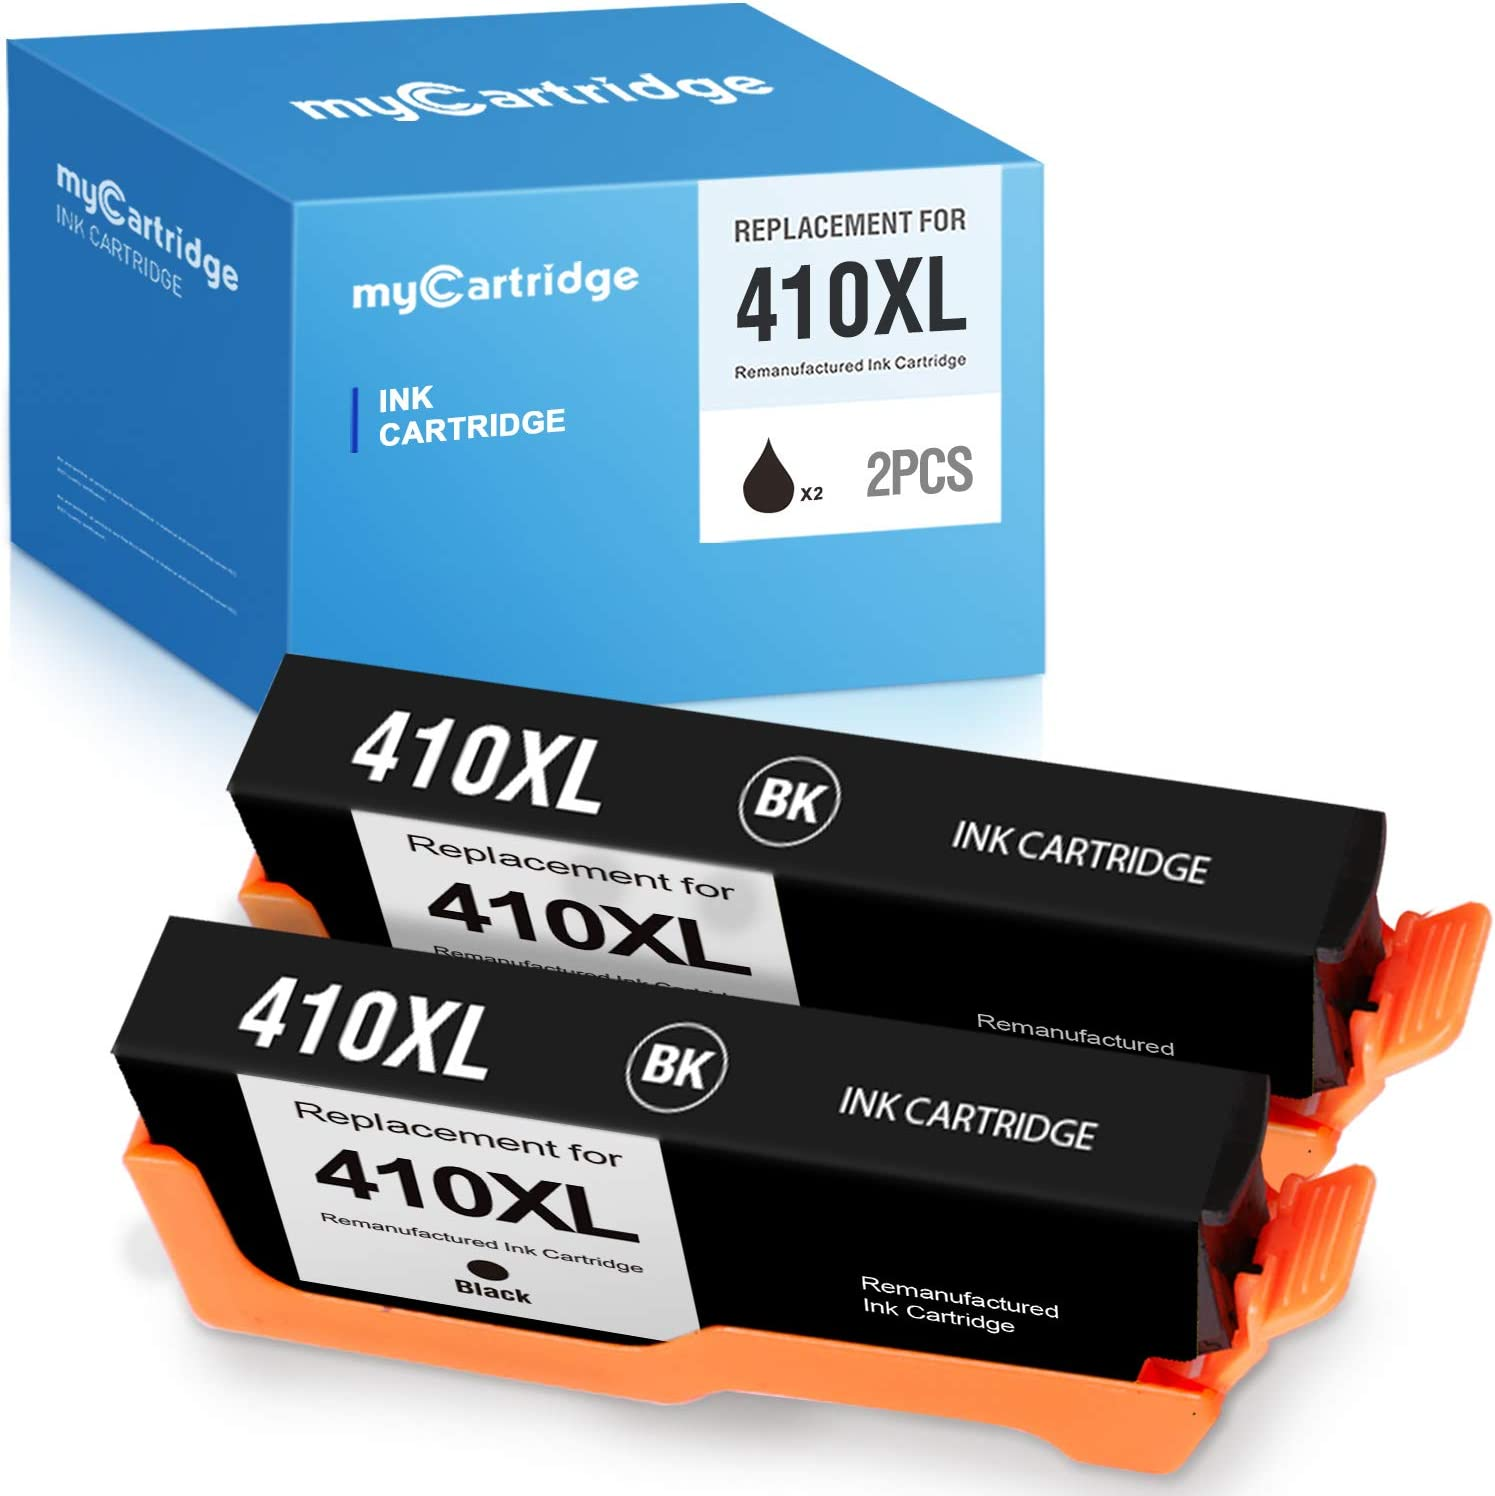 myCartridge Remanufactured Ink Cartridges Replacement for Epson 410XL 410 XL T410XL Ink Cartridge use with XP-640 XP-830 XP-7100 XP-630 XP-530 XP-635(2-Pack,Black)